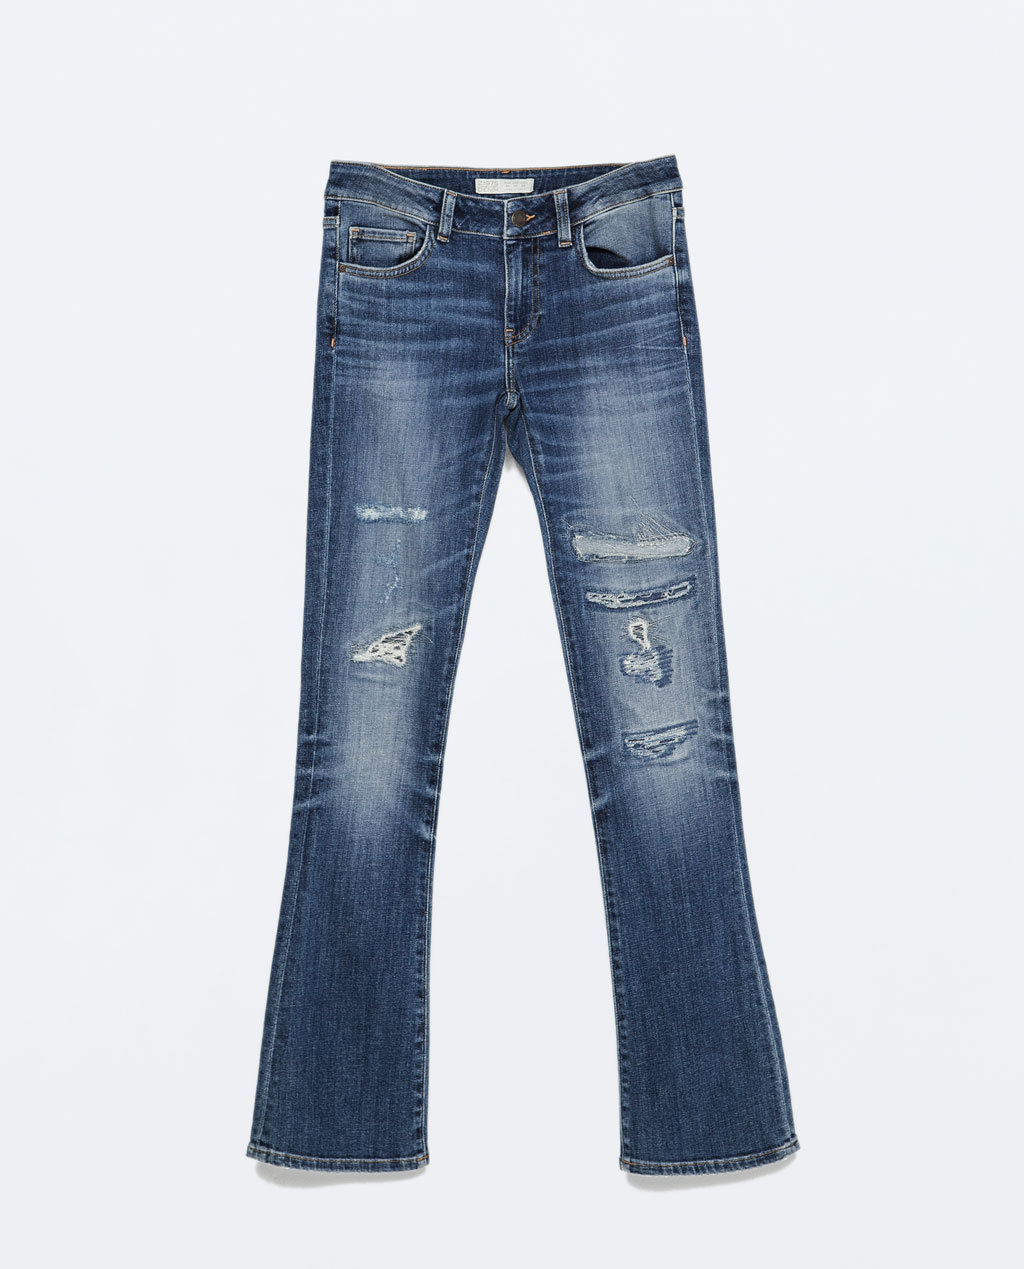 Medium Wash Bootcut Jeans - style: bootcut; length: standard; pattern: plain; pocket detail: traditional 5 pocket; waist: mid/regular rise; predominant colour: denim; occasions: casual; fibres: cotton - stretch; jeans detail: whiskering, shading down centre of thigh, rips; texture group: denim; pattern type: fabric; season: s/s 2015; wardrobe: basic